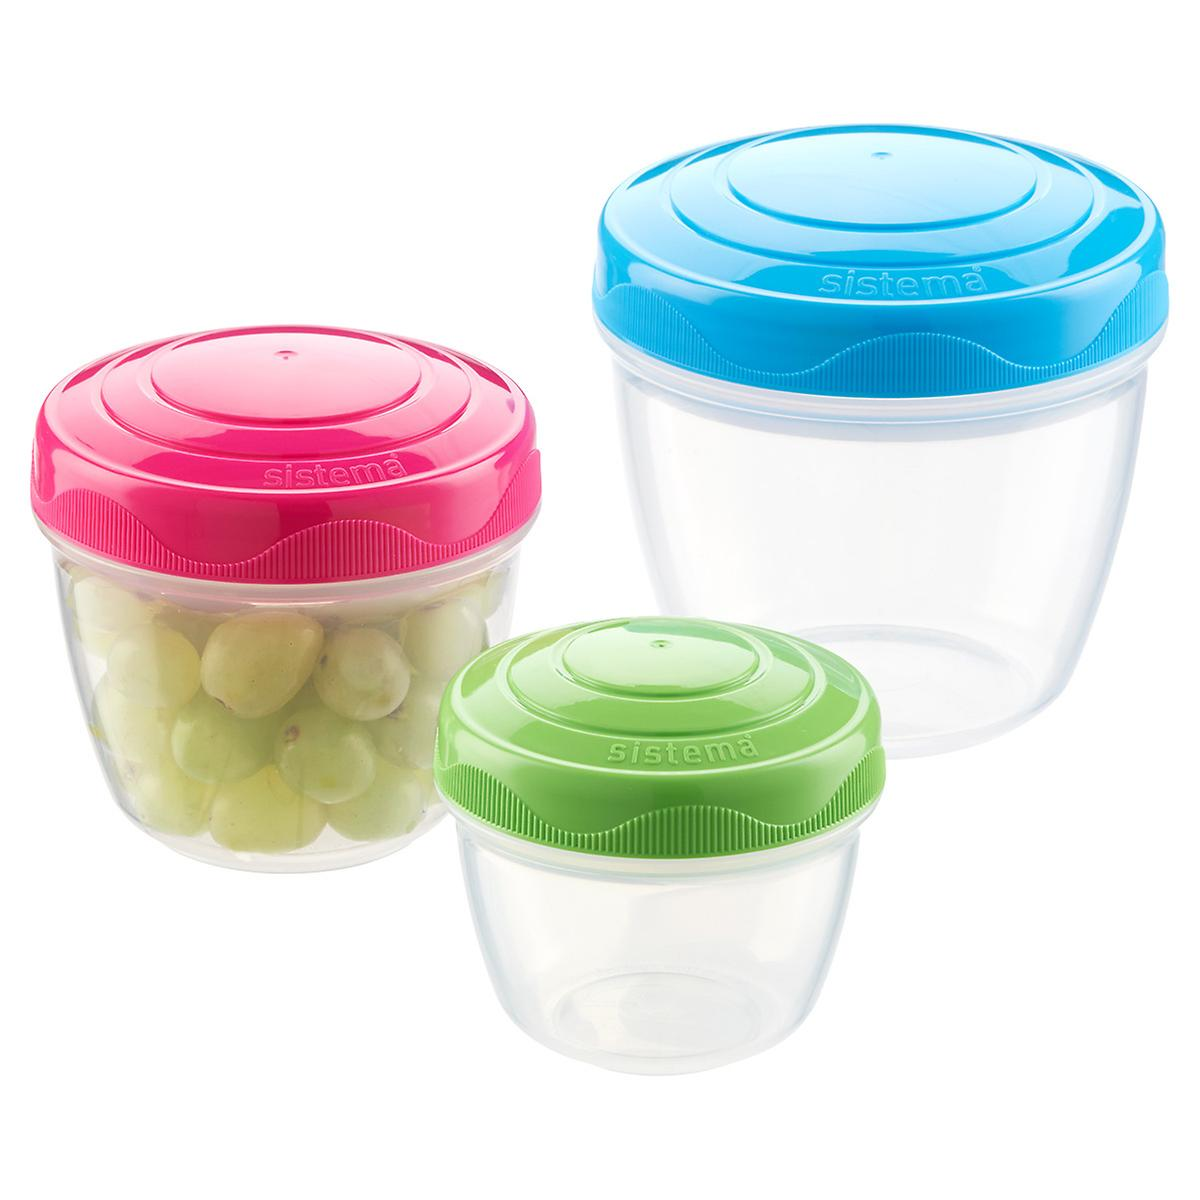 Sistema Snack & Nest Containers